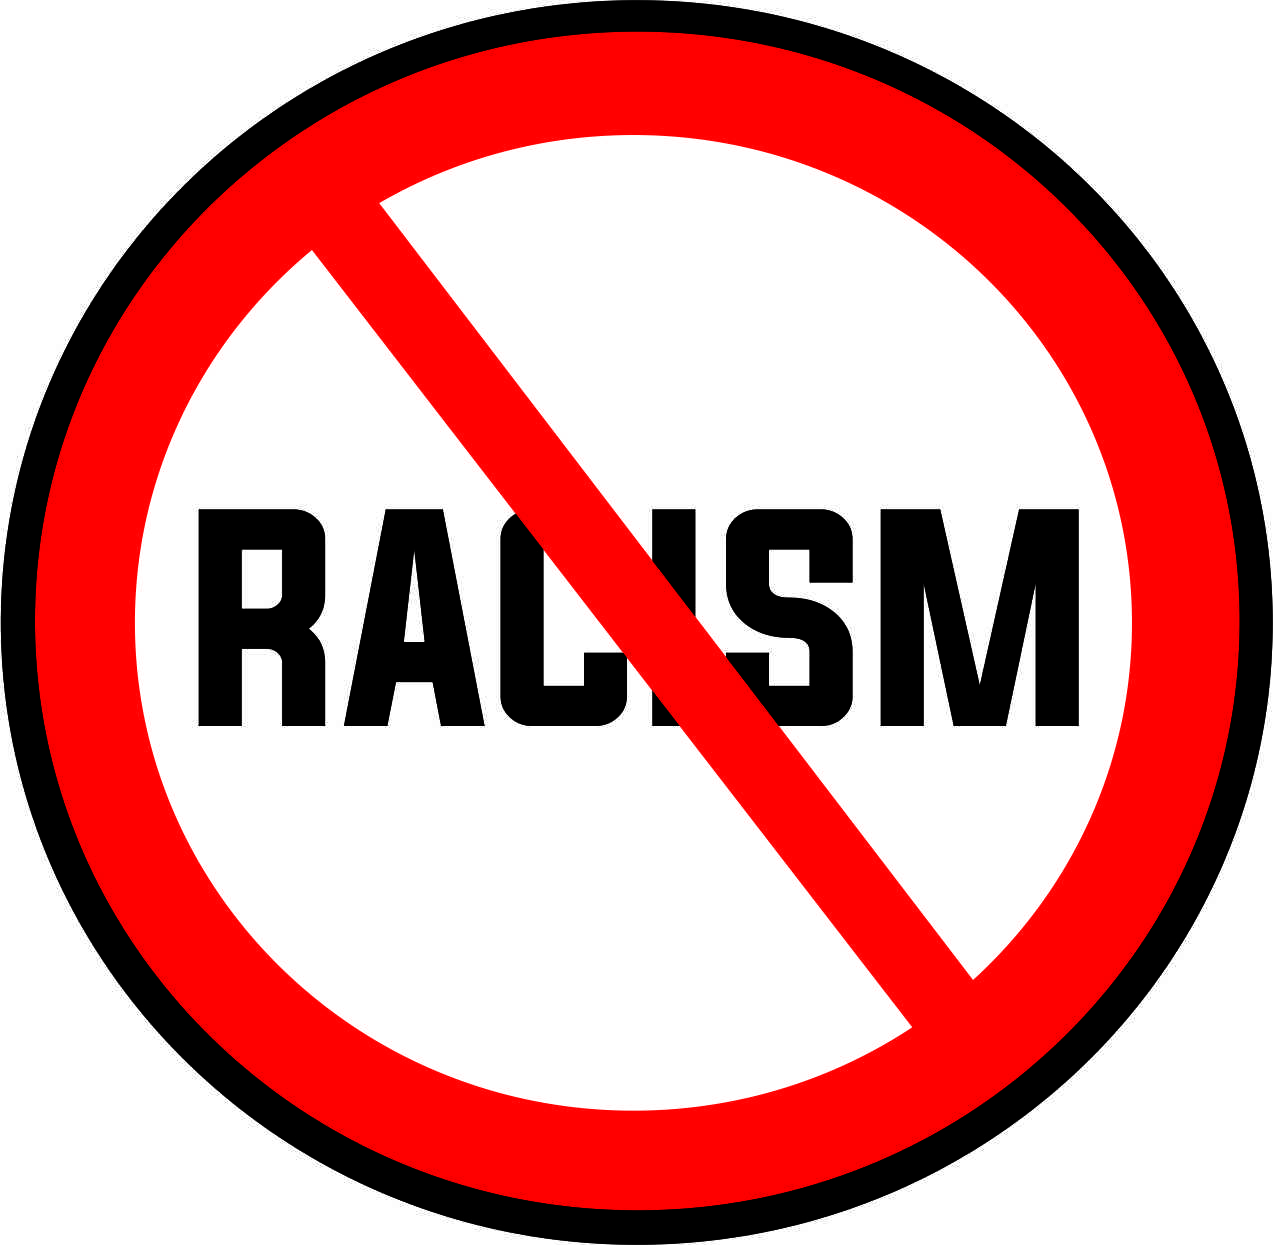 key concept of racism Literature review- key conceptspdf - download as pdf file (pdf), text file (txt) or read online literature review.